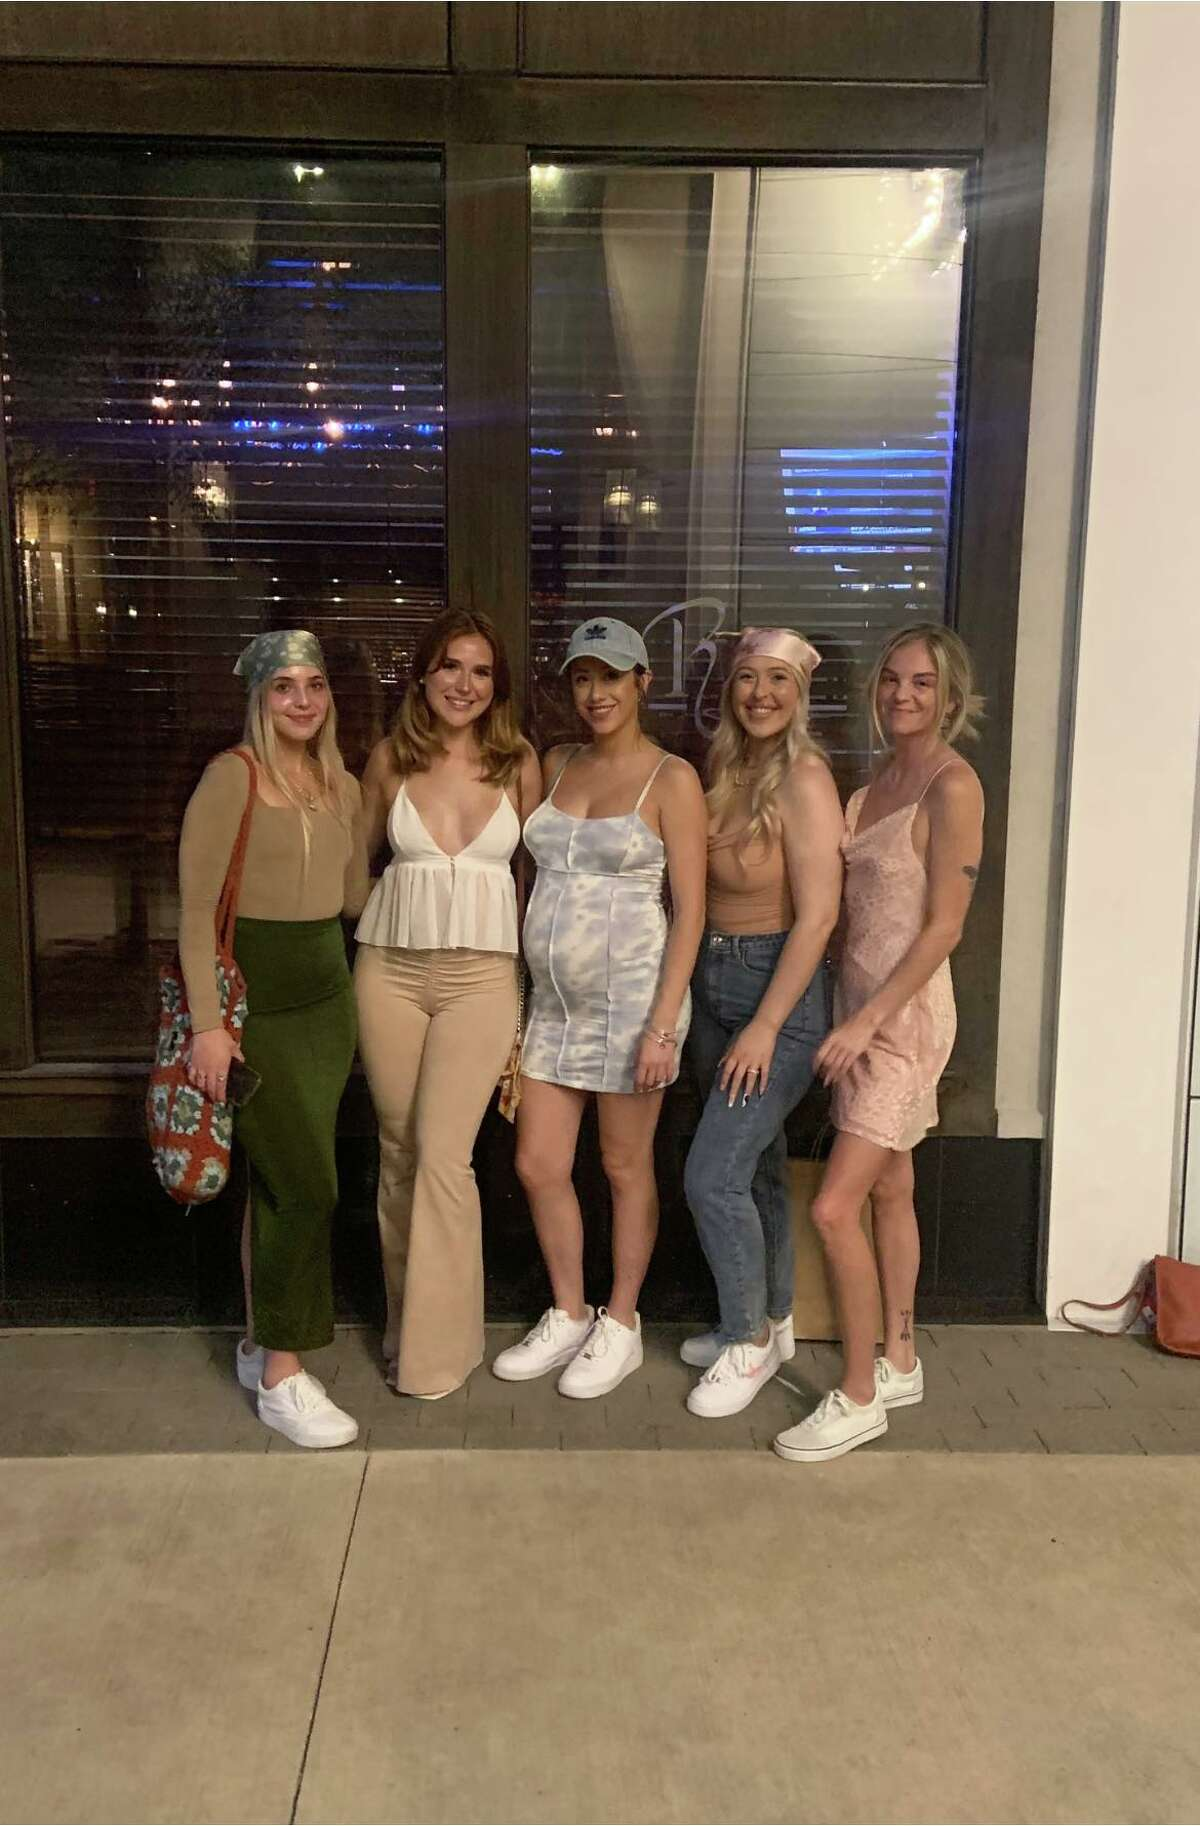 """""""We were all just dumbfounded,"""" Hughes, who is 25 weeks pregnant, said. """"How are you going to turn away a pregnant woman? I'm hungry. I would wear this outfit with my family."""""""